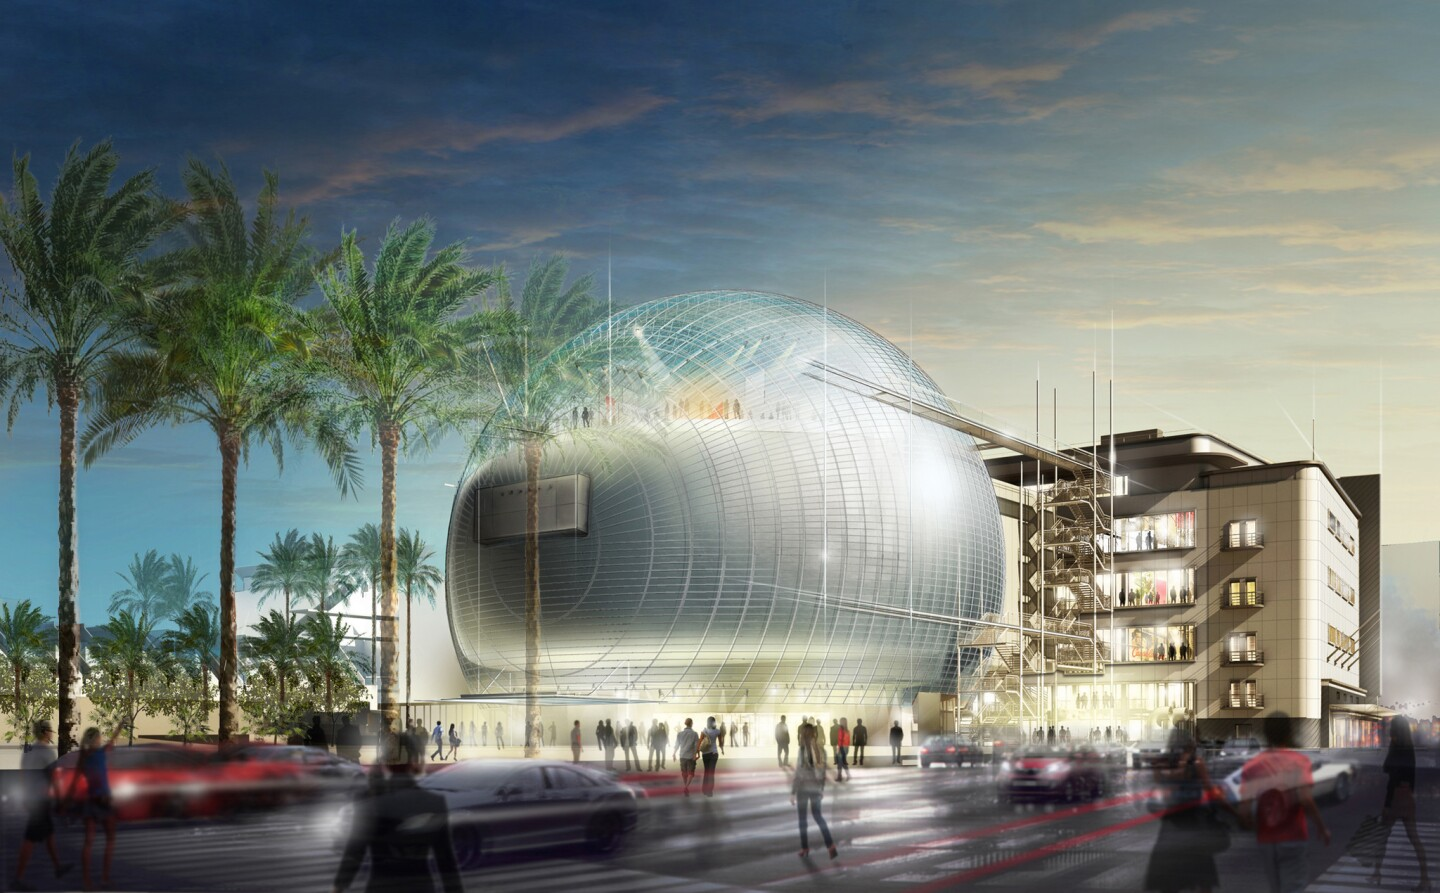 The Academy Museum will include a 1,000-seat theater to be added to the back of the old May Co. building at Wilshire Boulevard and Fairfax Avenue, adjacent to the campus of the Los Angeles County Museum of Art (in the background, left).